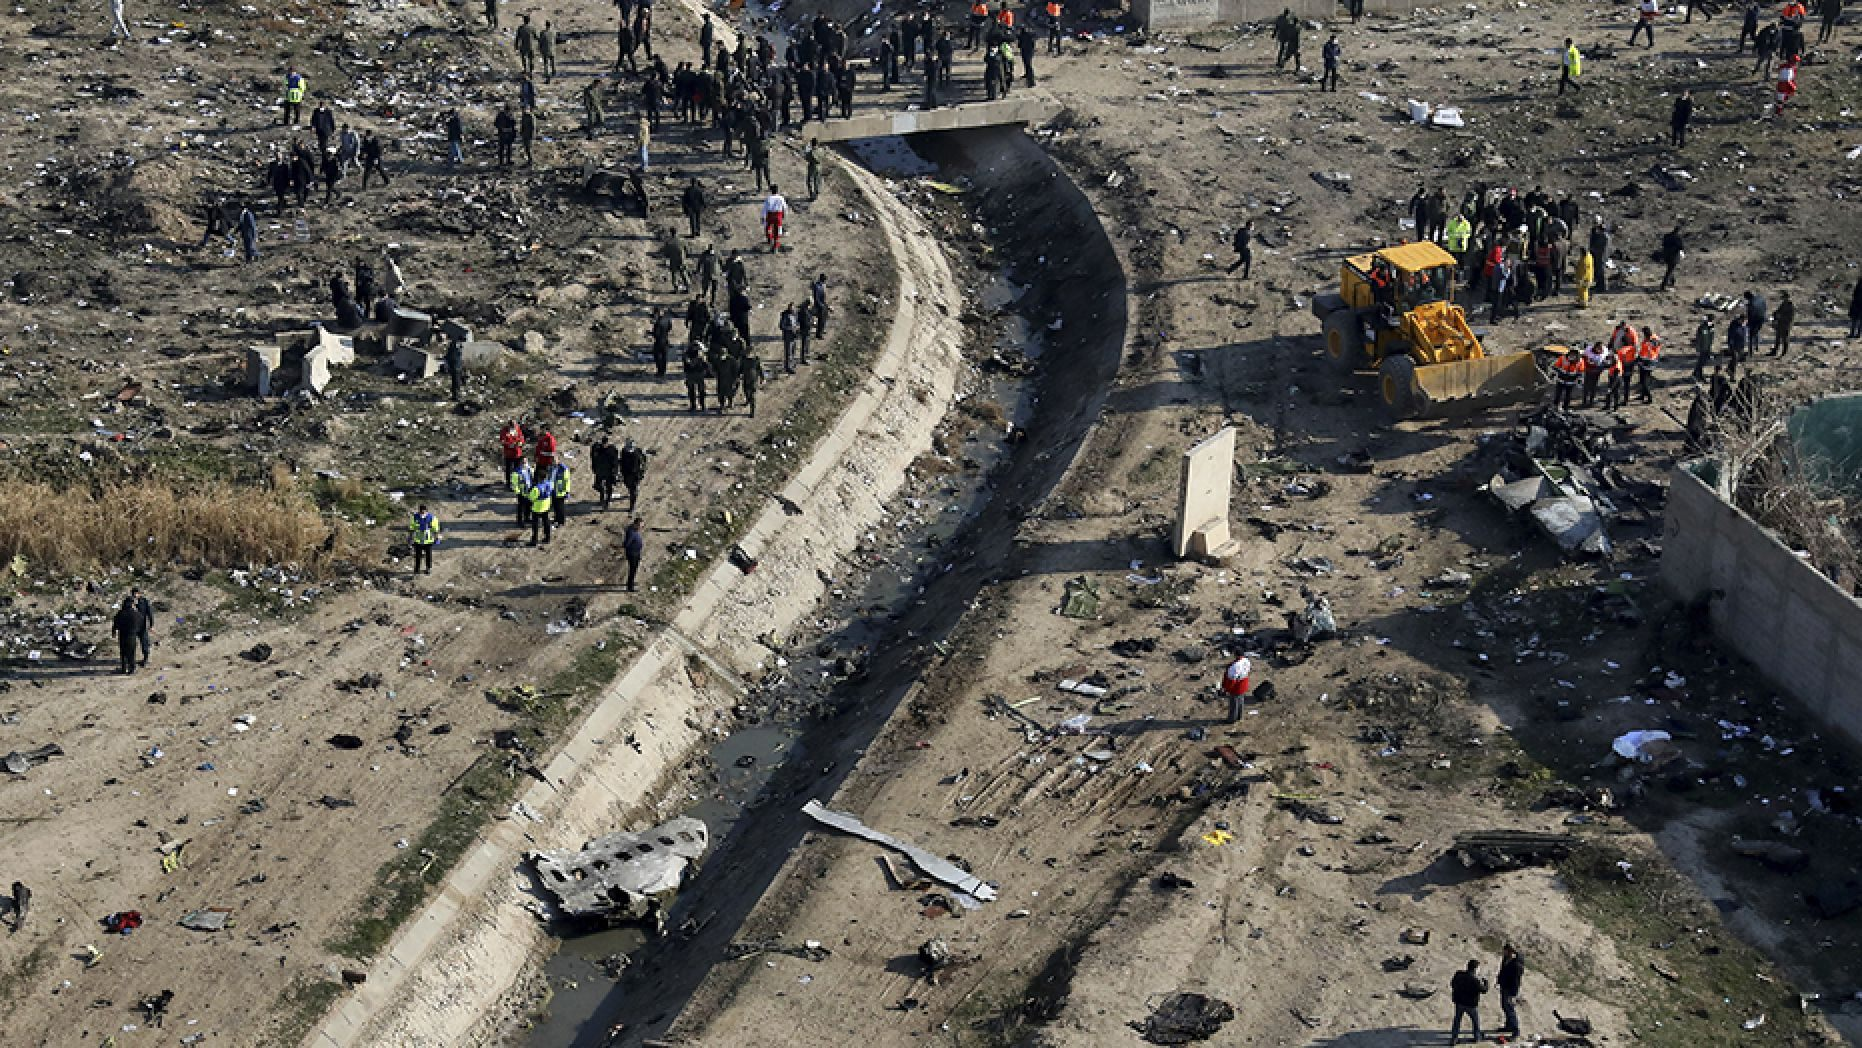 Rescue workers search the scene where an Ukrainian plane crashed in Shahedshahr, southwest of the Iranian capital of Tehran, on Wednesday. (AP)